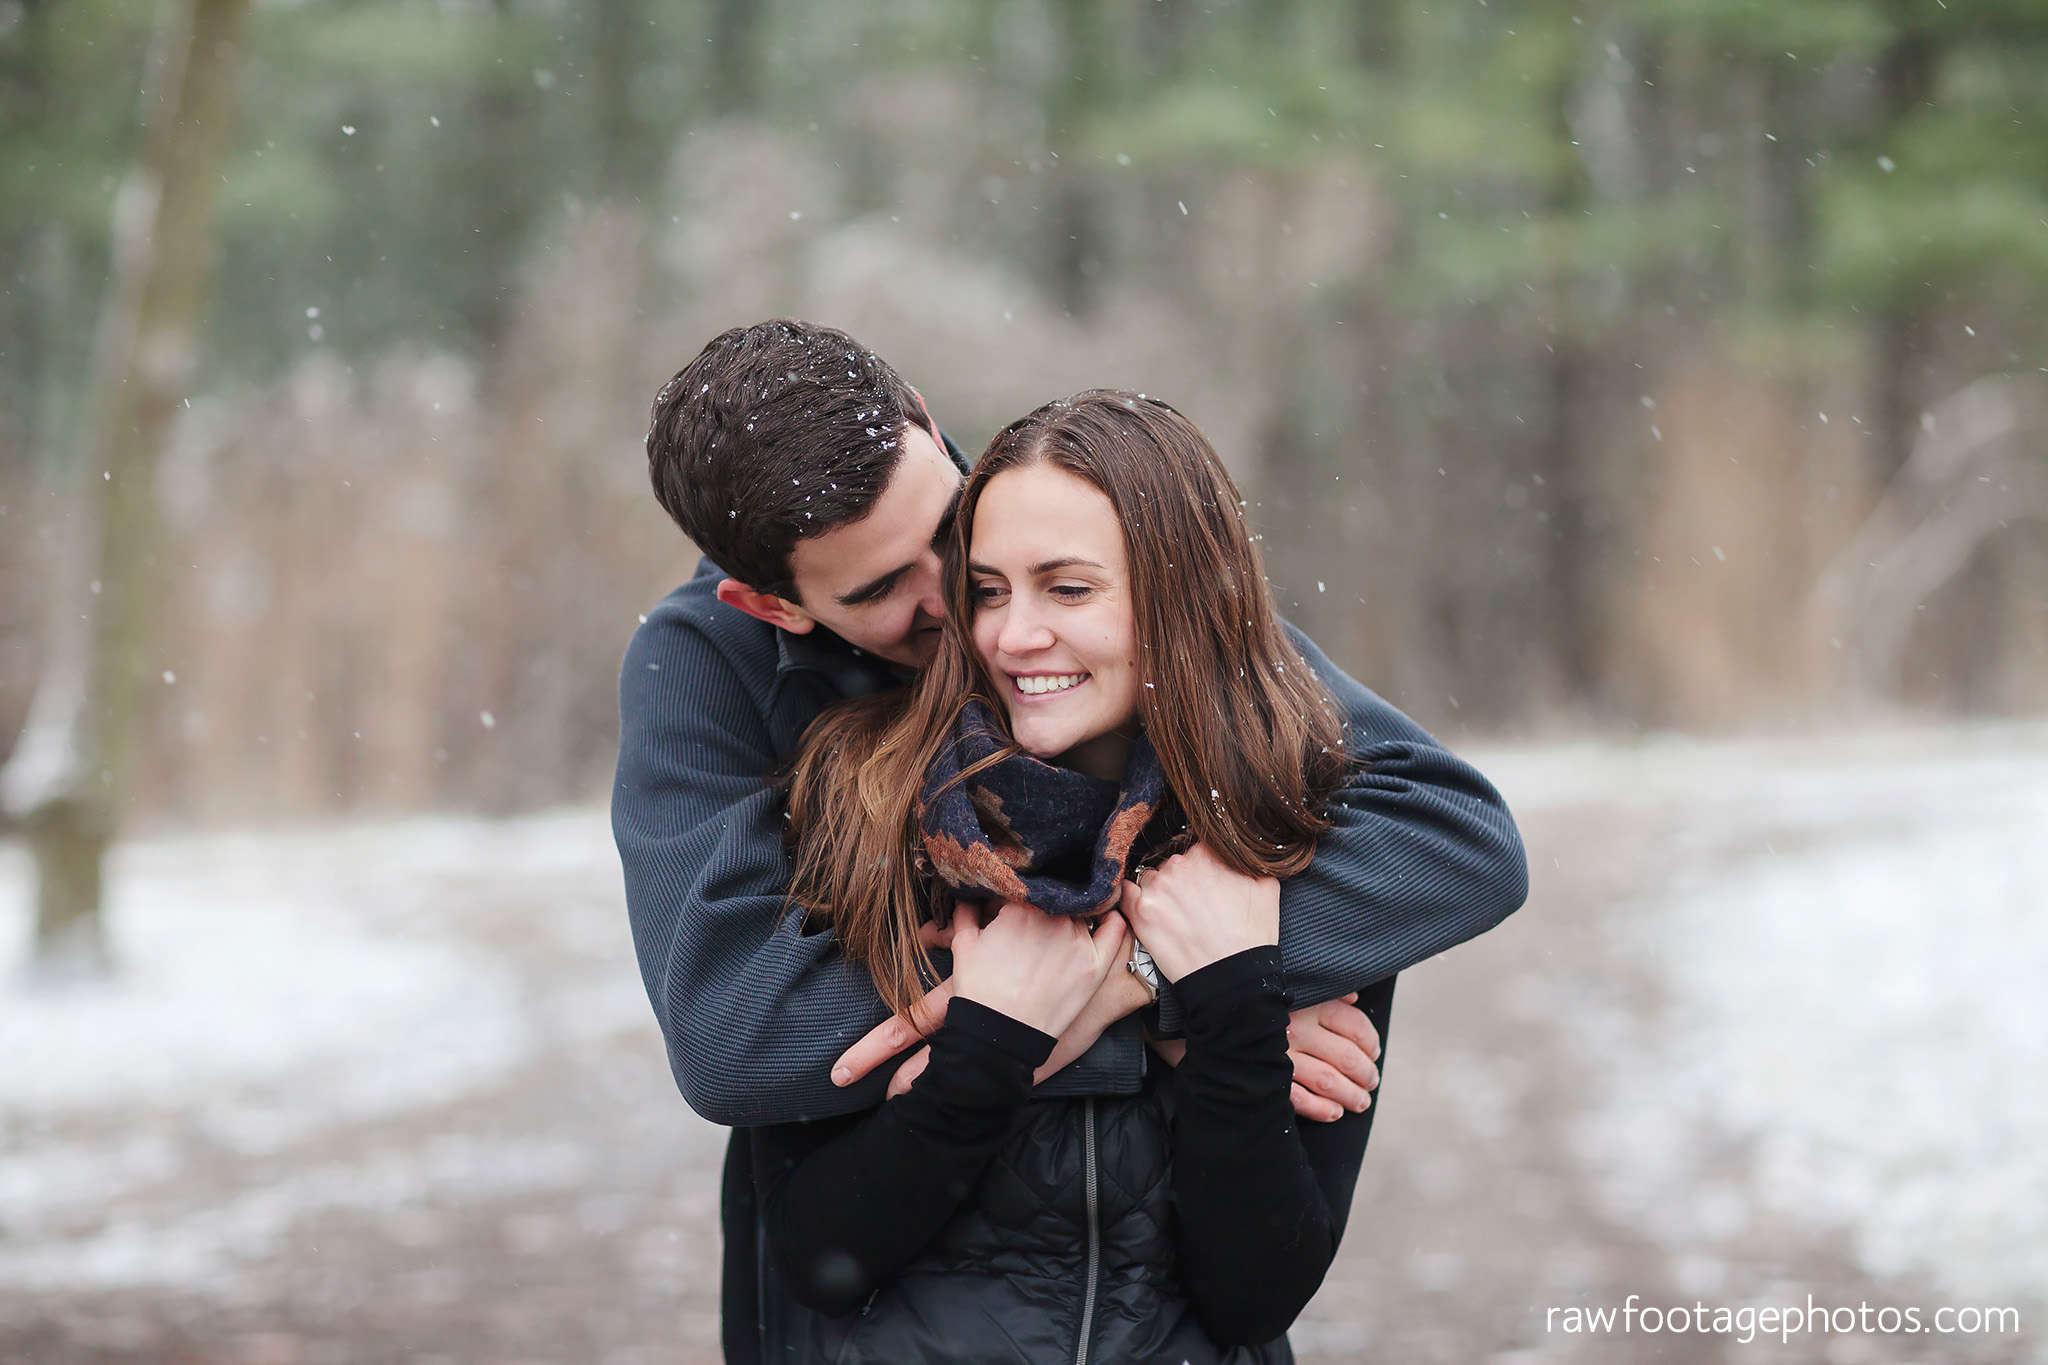 london_ontario_wedding_photographer-snowy_engagement_session-winter-barn-farm-snowflakes-blizzard-raw_footage_photography021.jpg